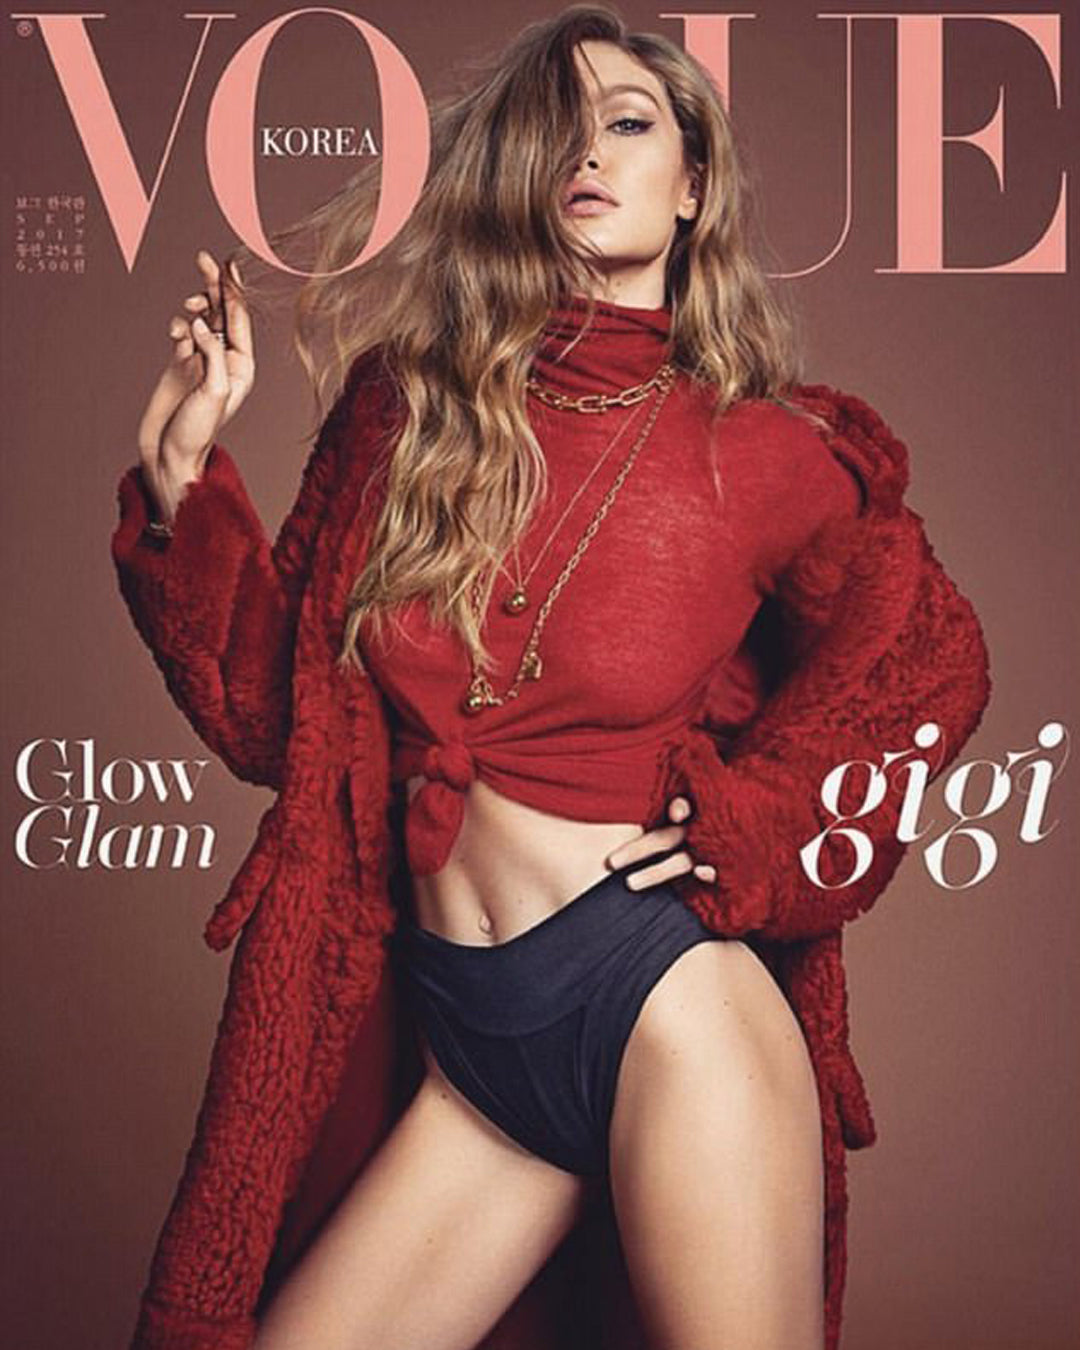 Lingerie Typeface in Vogue magazine by Moshik Nadav Fashion Typography and Fonts